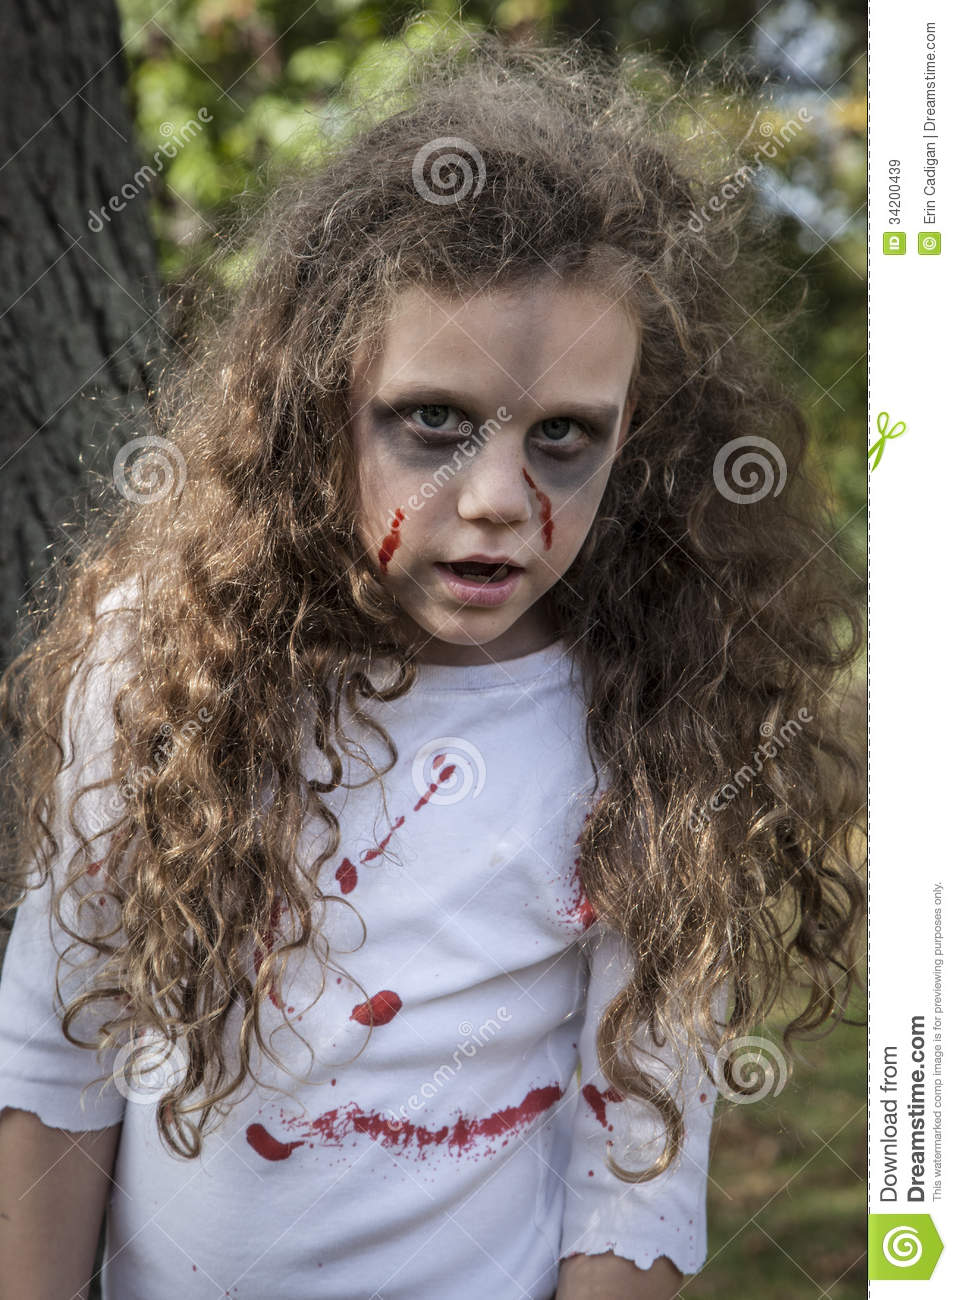 Little Zombie Girl Royalty Free Stock Images - Image: 34200439